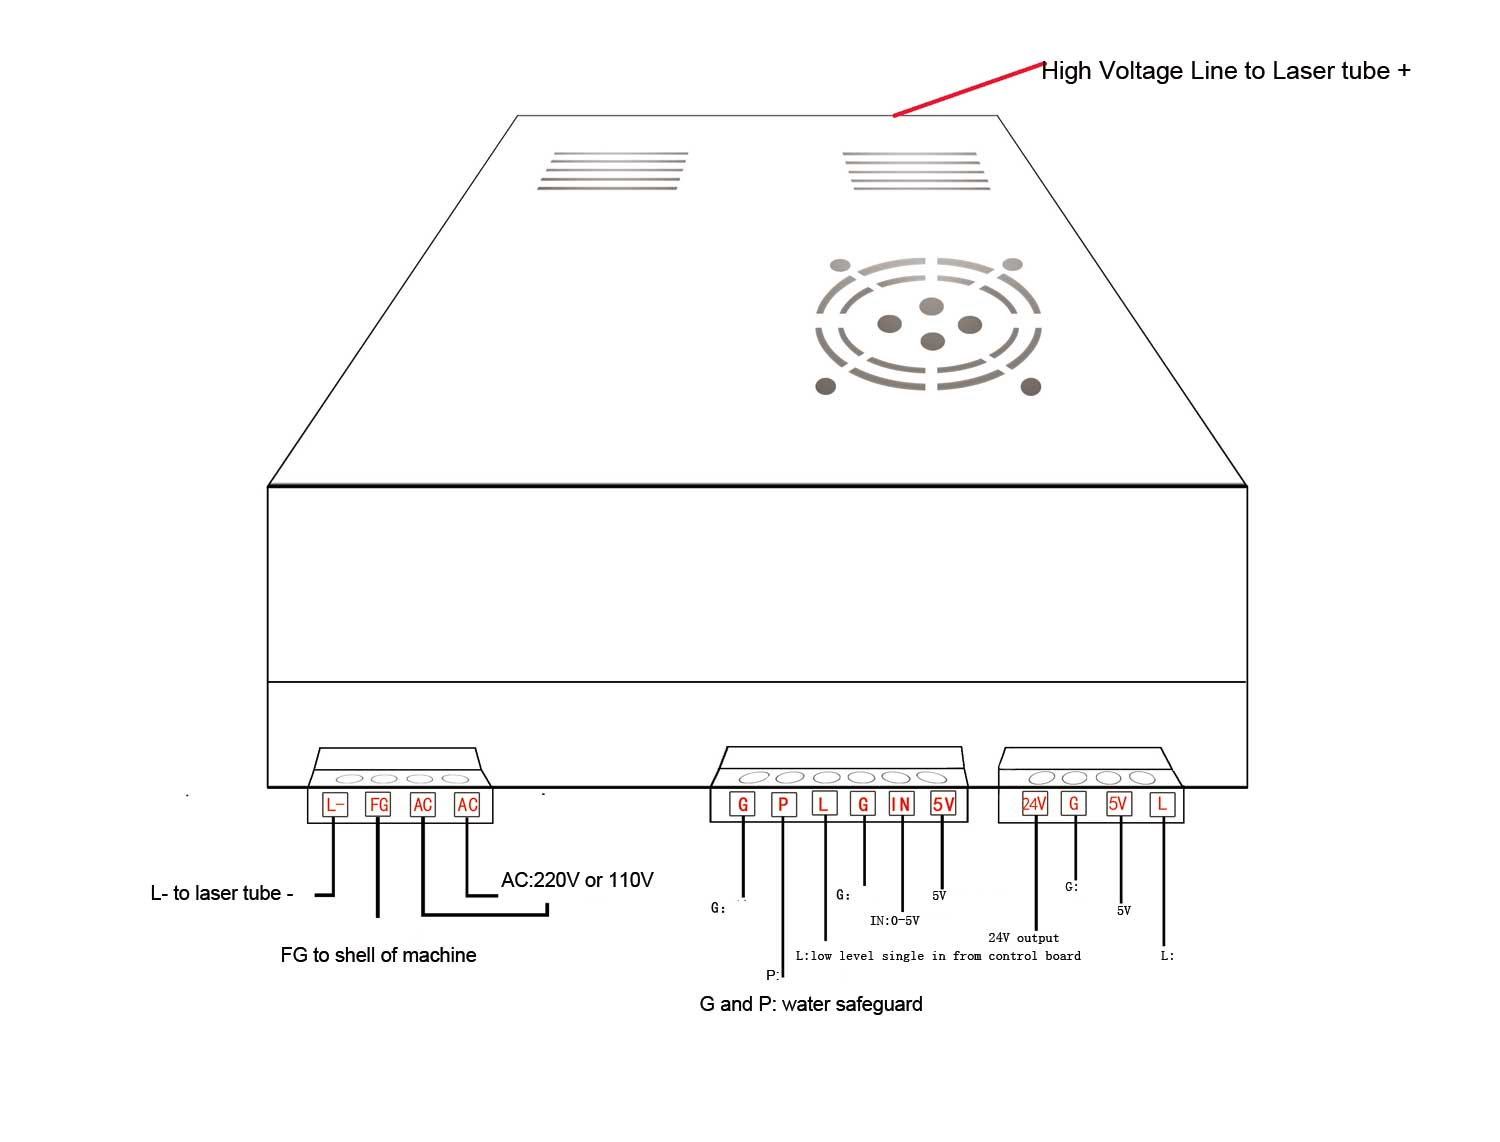 PS40-3-g  Mw Laser Wiring Diagram on way switches, channel car, channel car amplifier, light fluorescent lamp ballast, speed single phase motor, three-way light switch, pole contactor, bulb ballast, lamp ballast, pole thermostat,